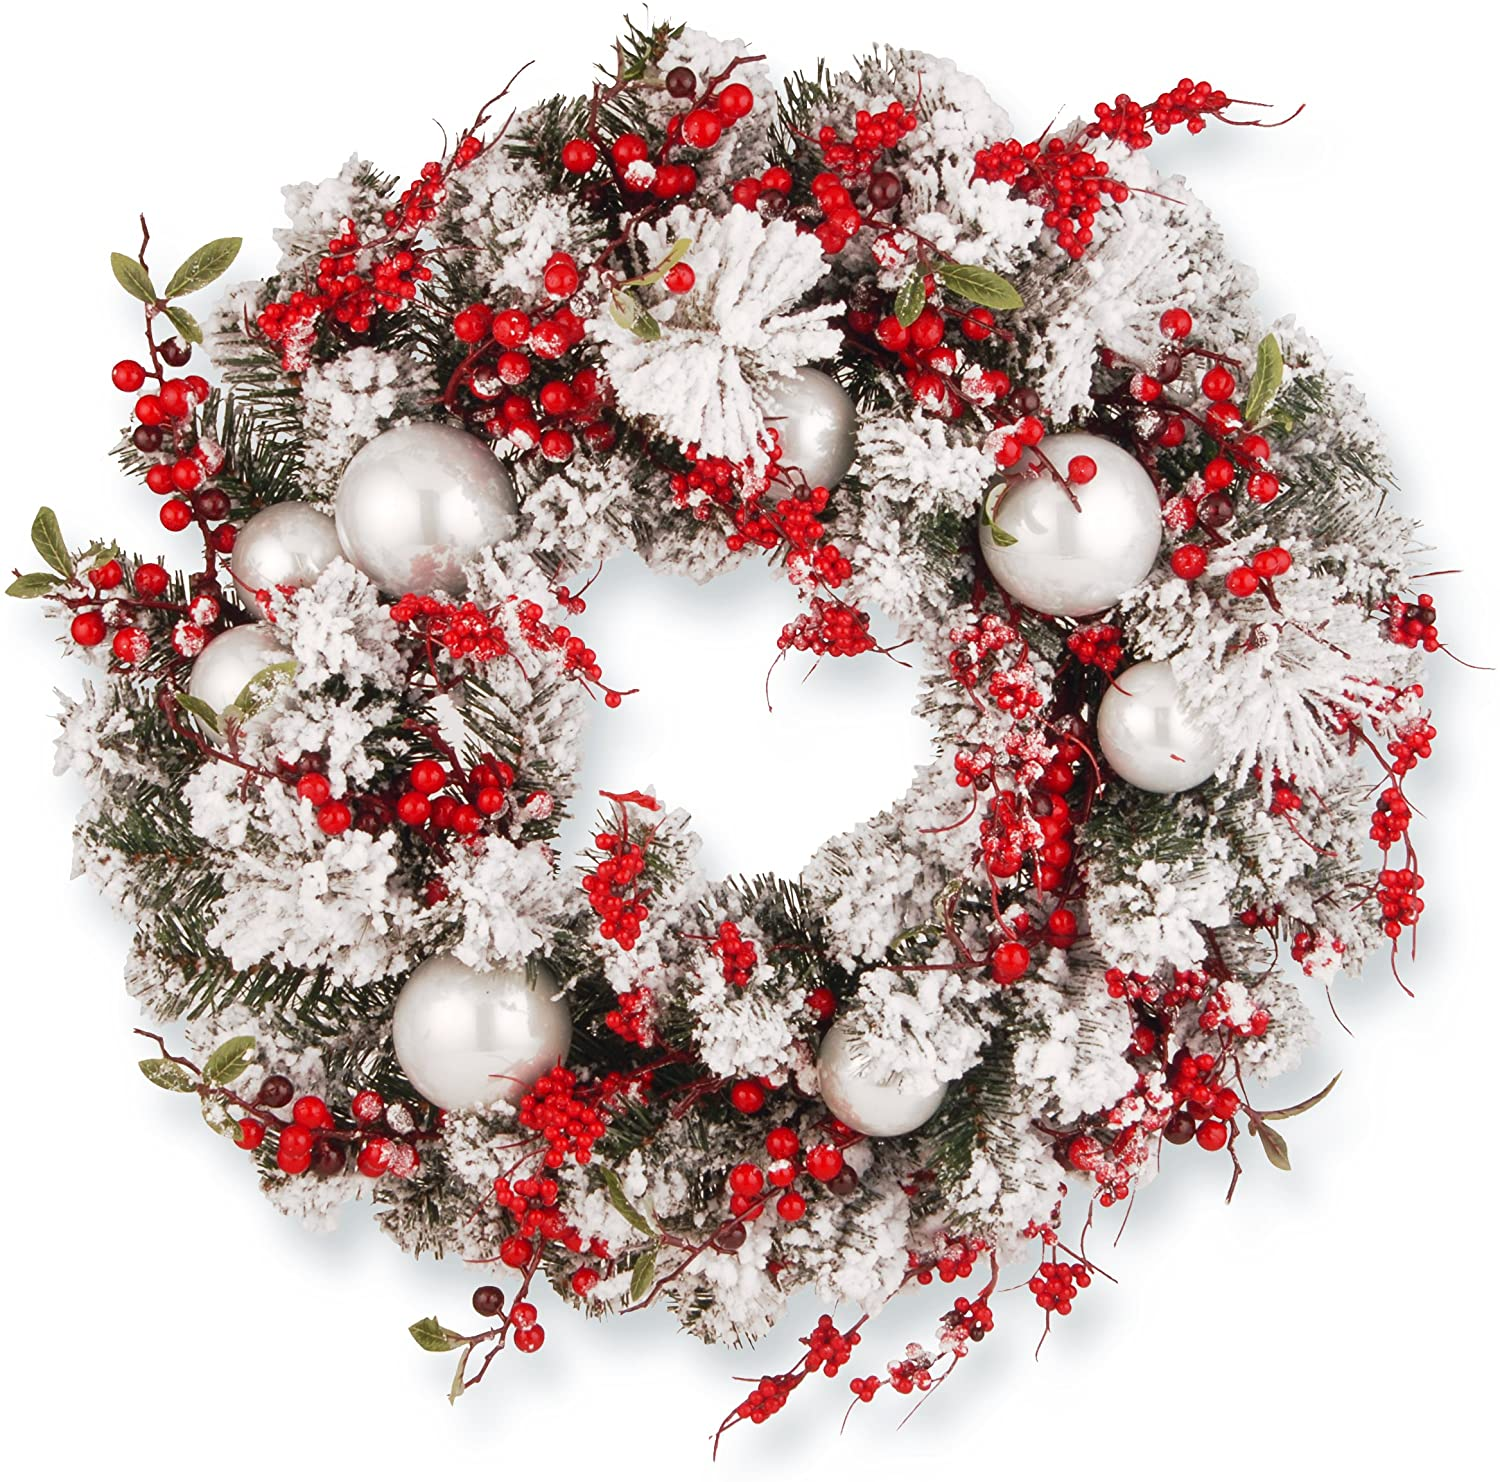 National Tree 24 Inch Christmas Wreath with Red and White Ornaments